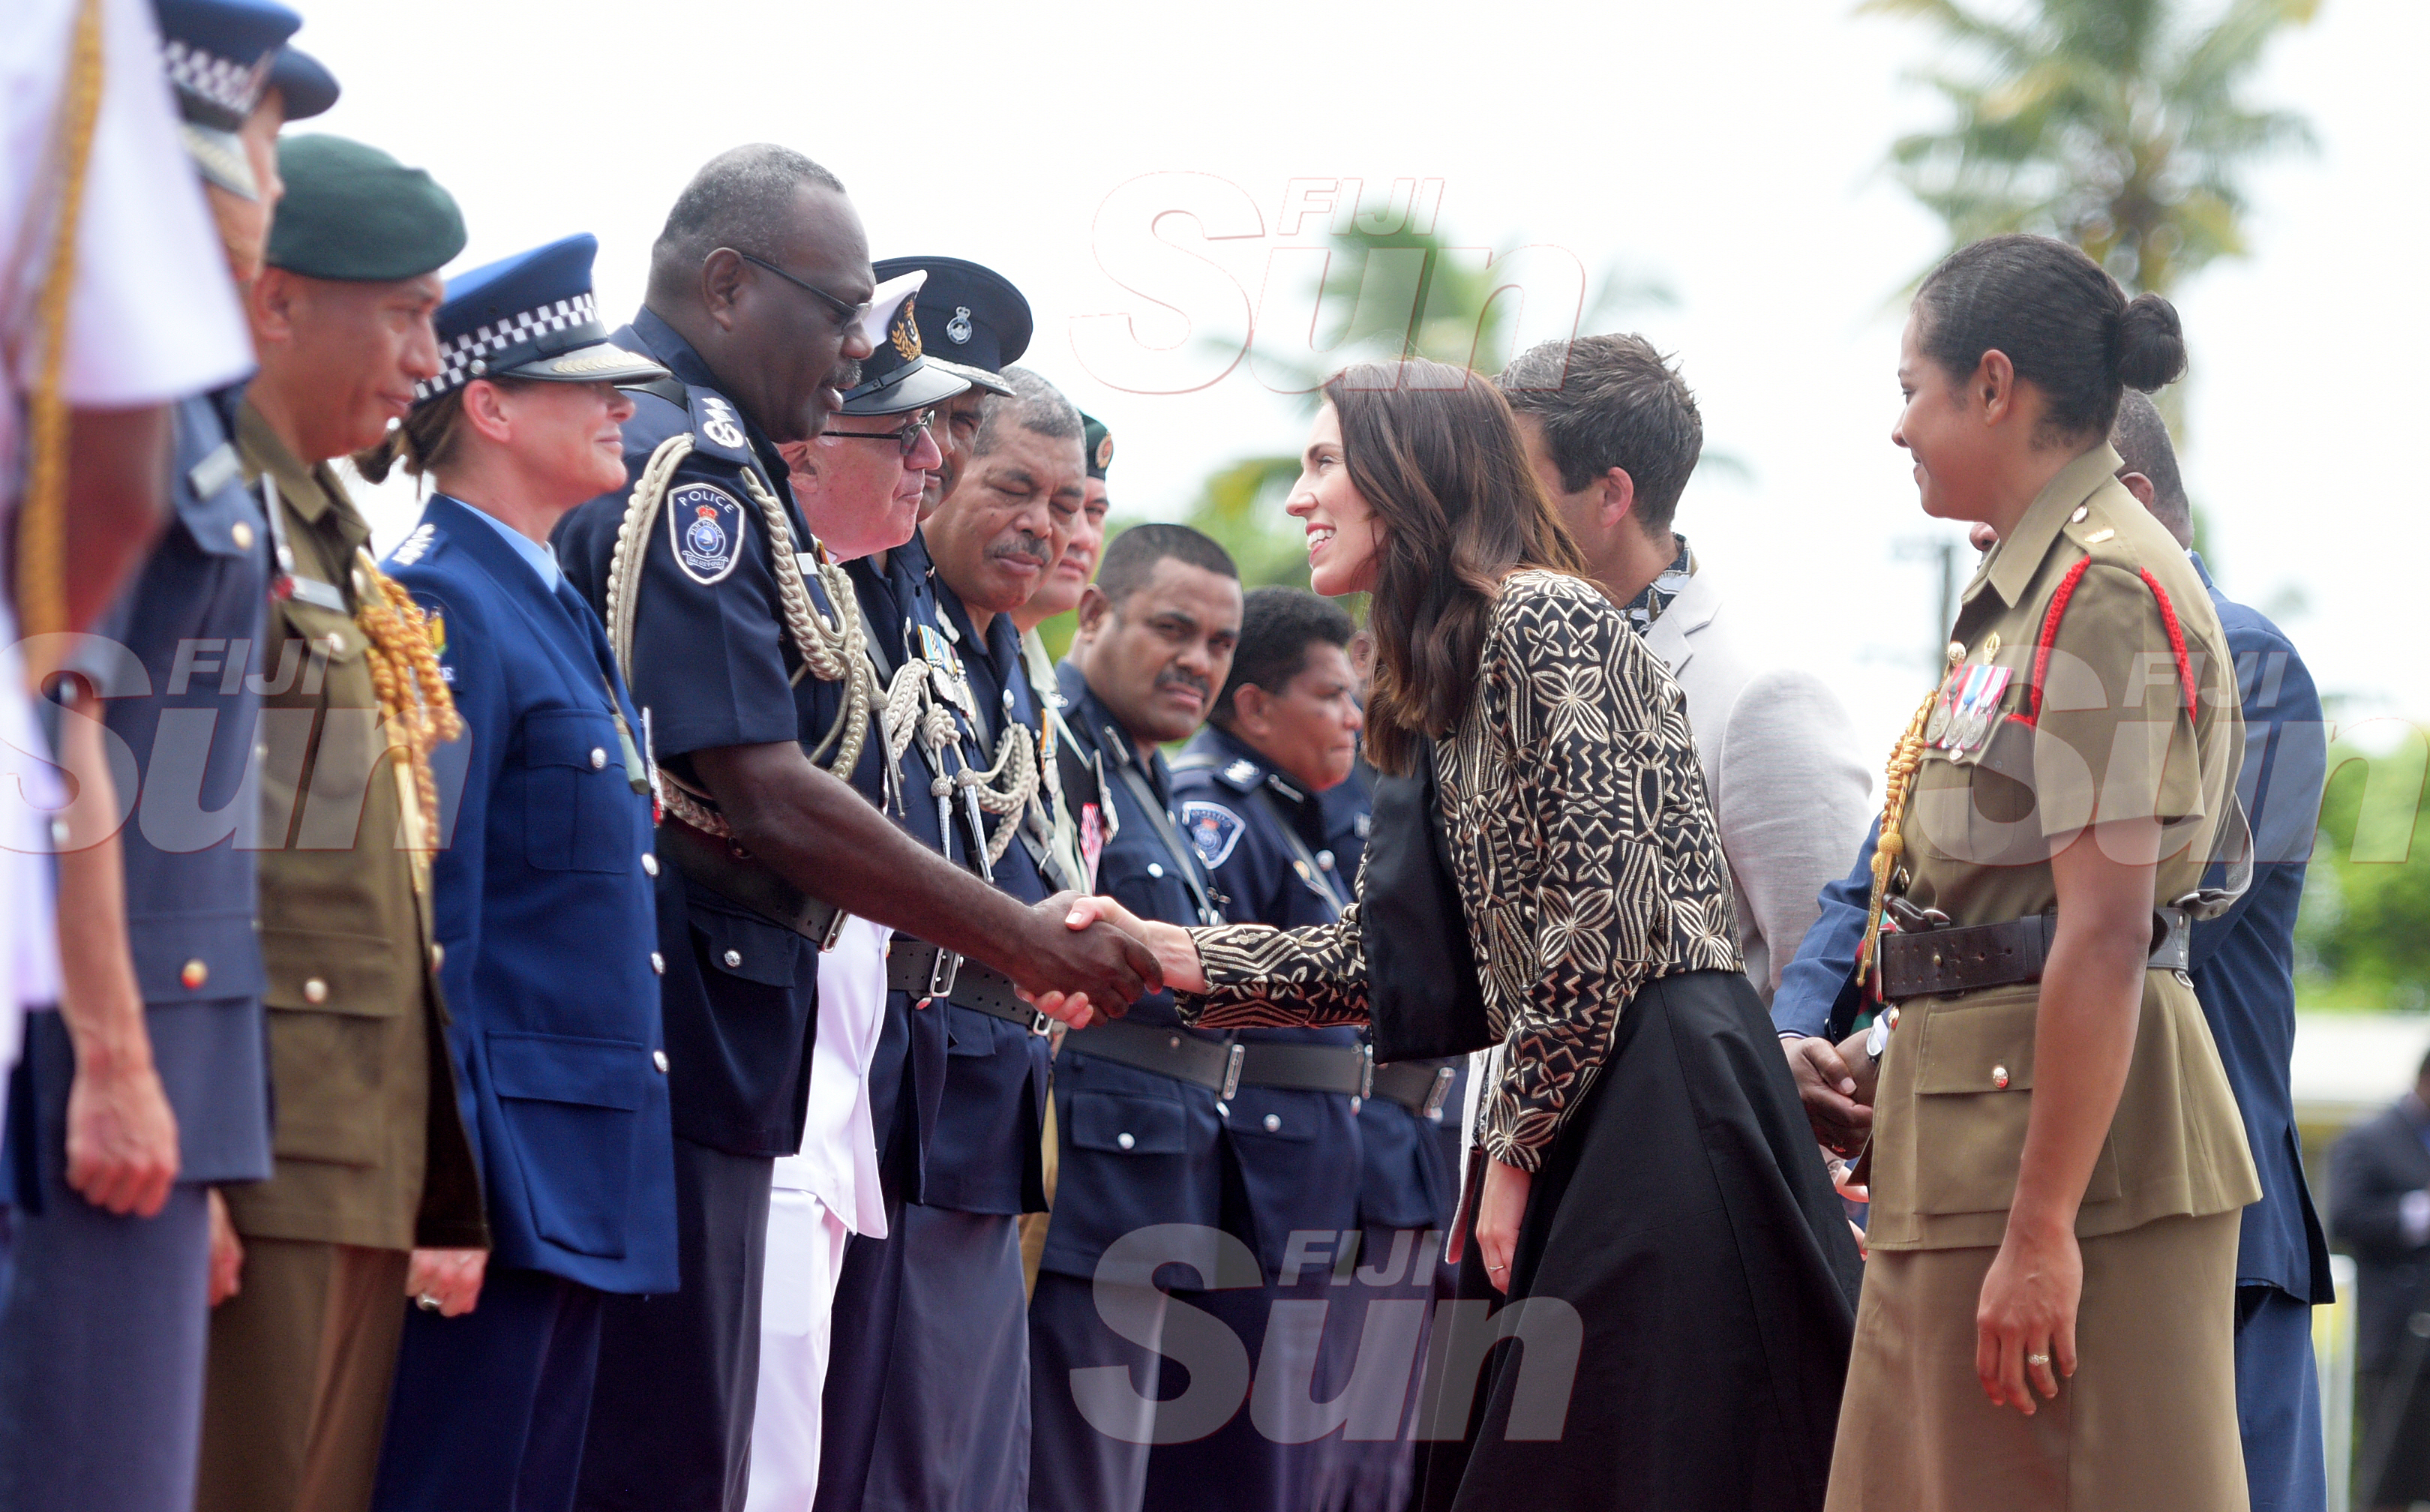 New Zealand Prime Minister Jacinda Ardern with Deputy Commissioner of Police Rusiate Tudravu follwing the wreath laying ceremony at National War Memorial site on February 25, 2020. Photo: Ronald Kumar.